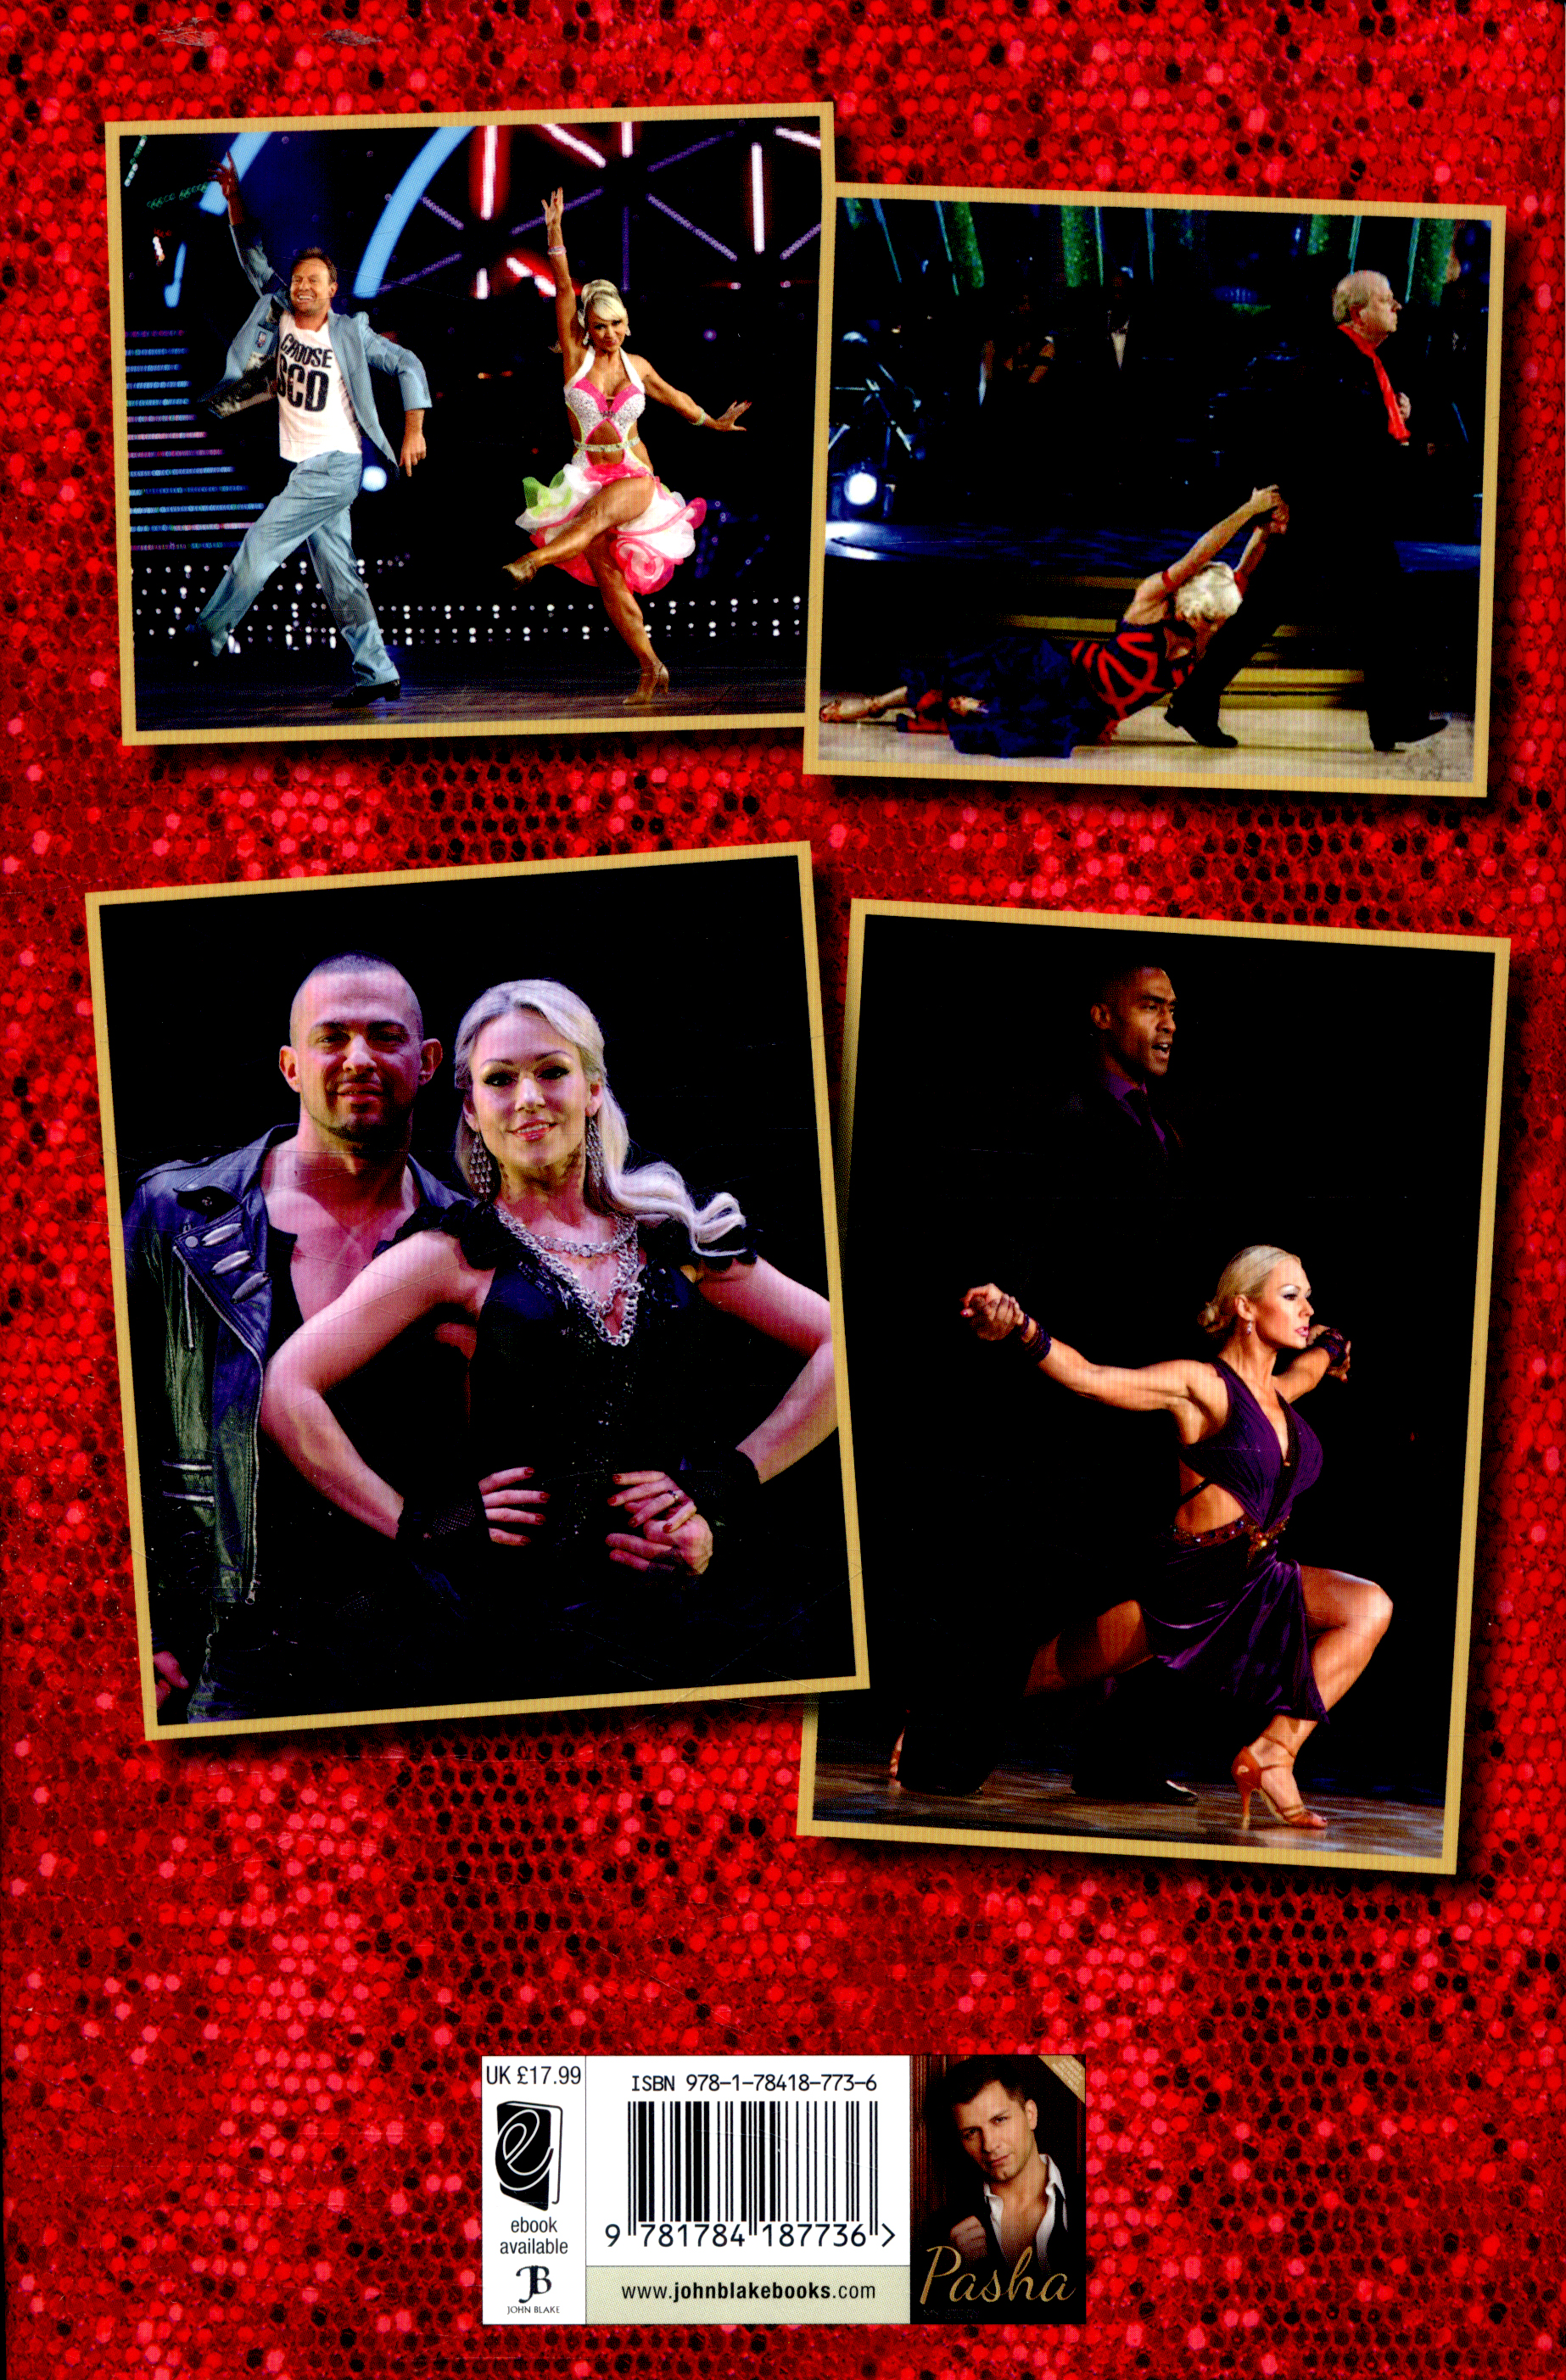 Cheap Kristina Rihanoff: Dancing Out of Darkness - My Story Books - Price Comparison